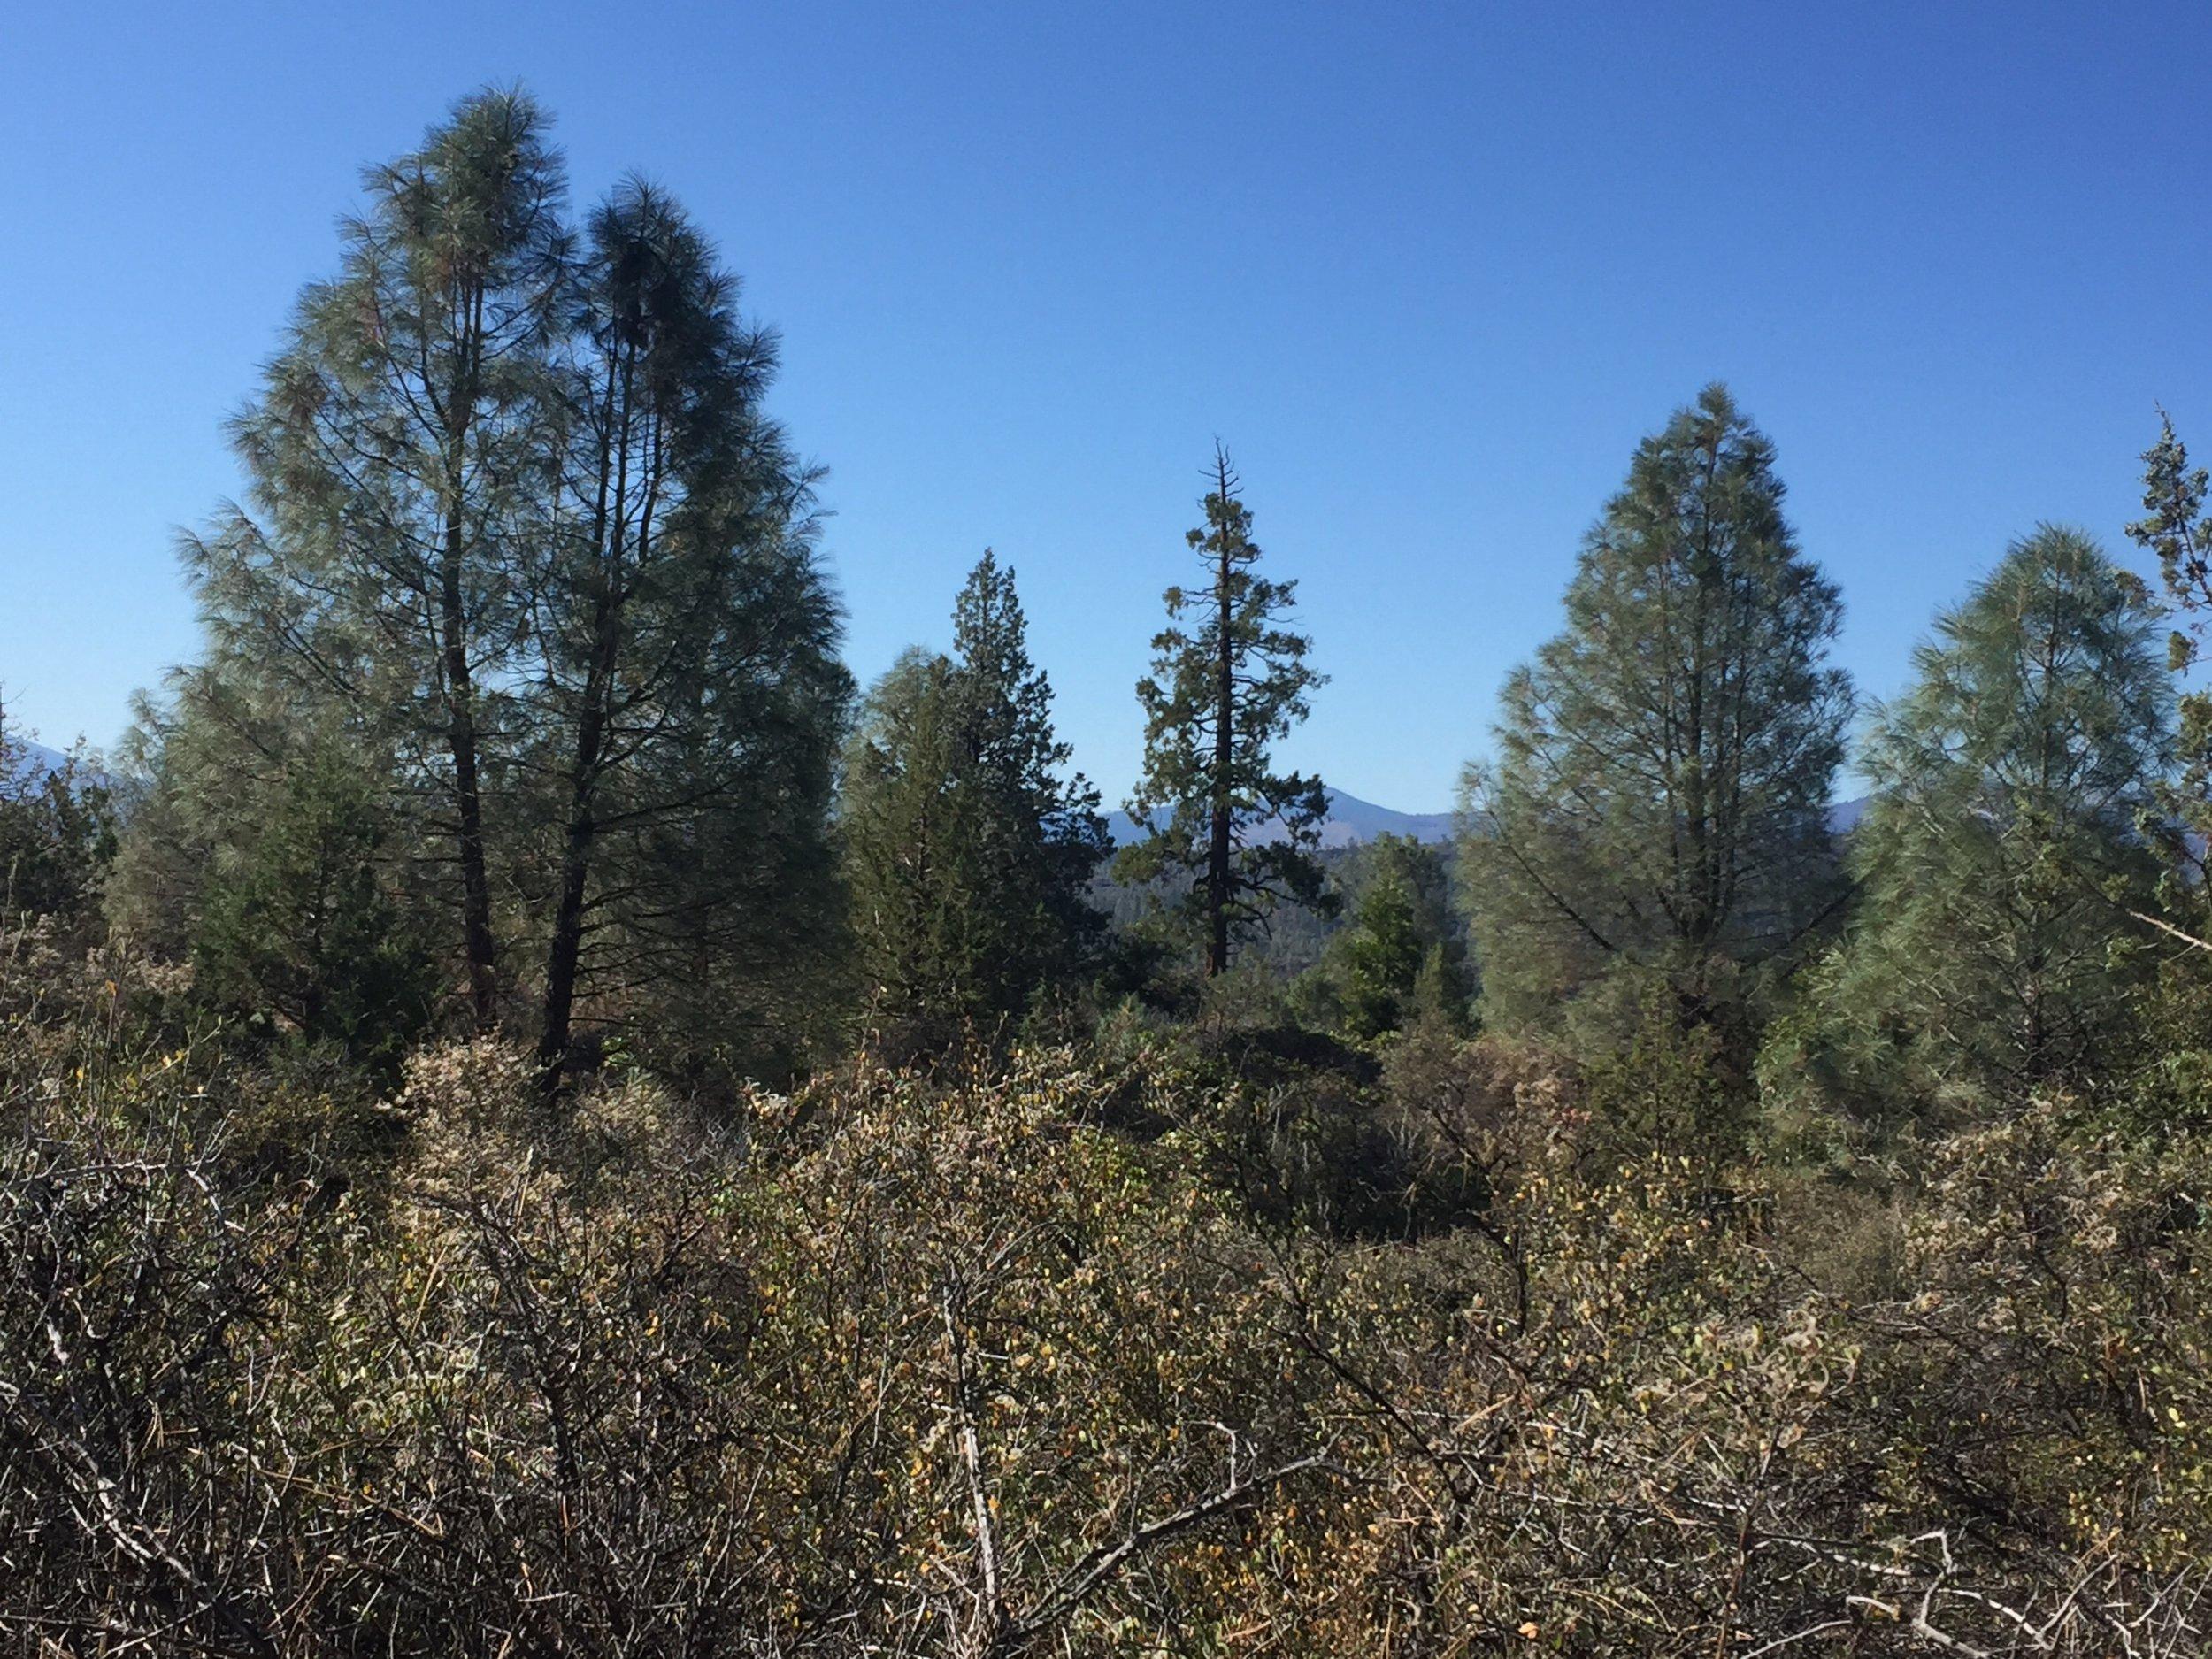 Gray pines dominated the open forest on the lava beds below the Hat Creek Rim